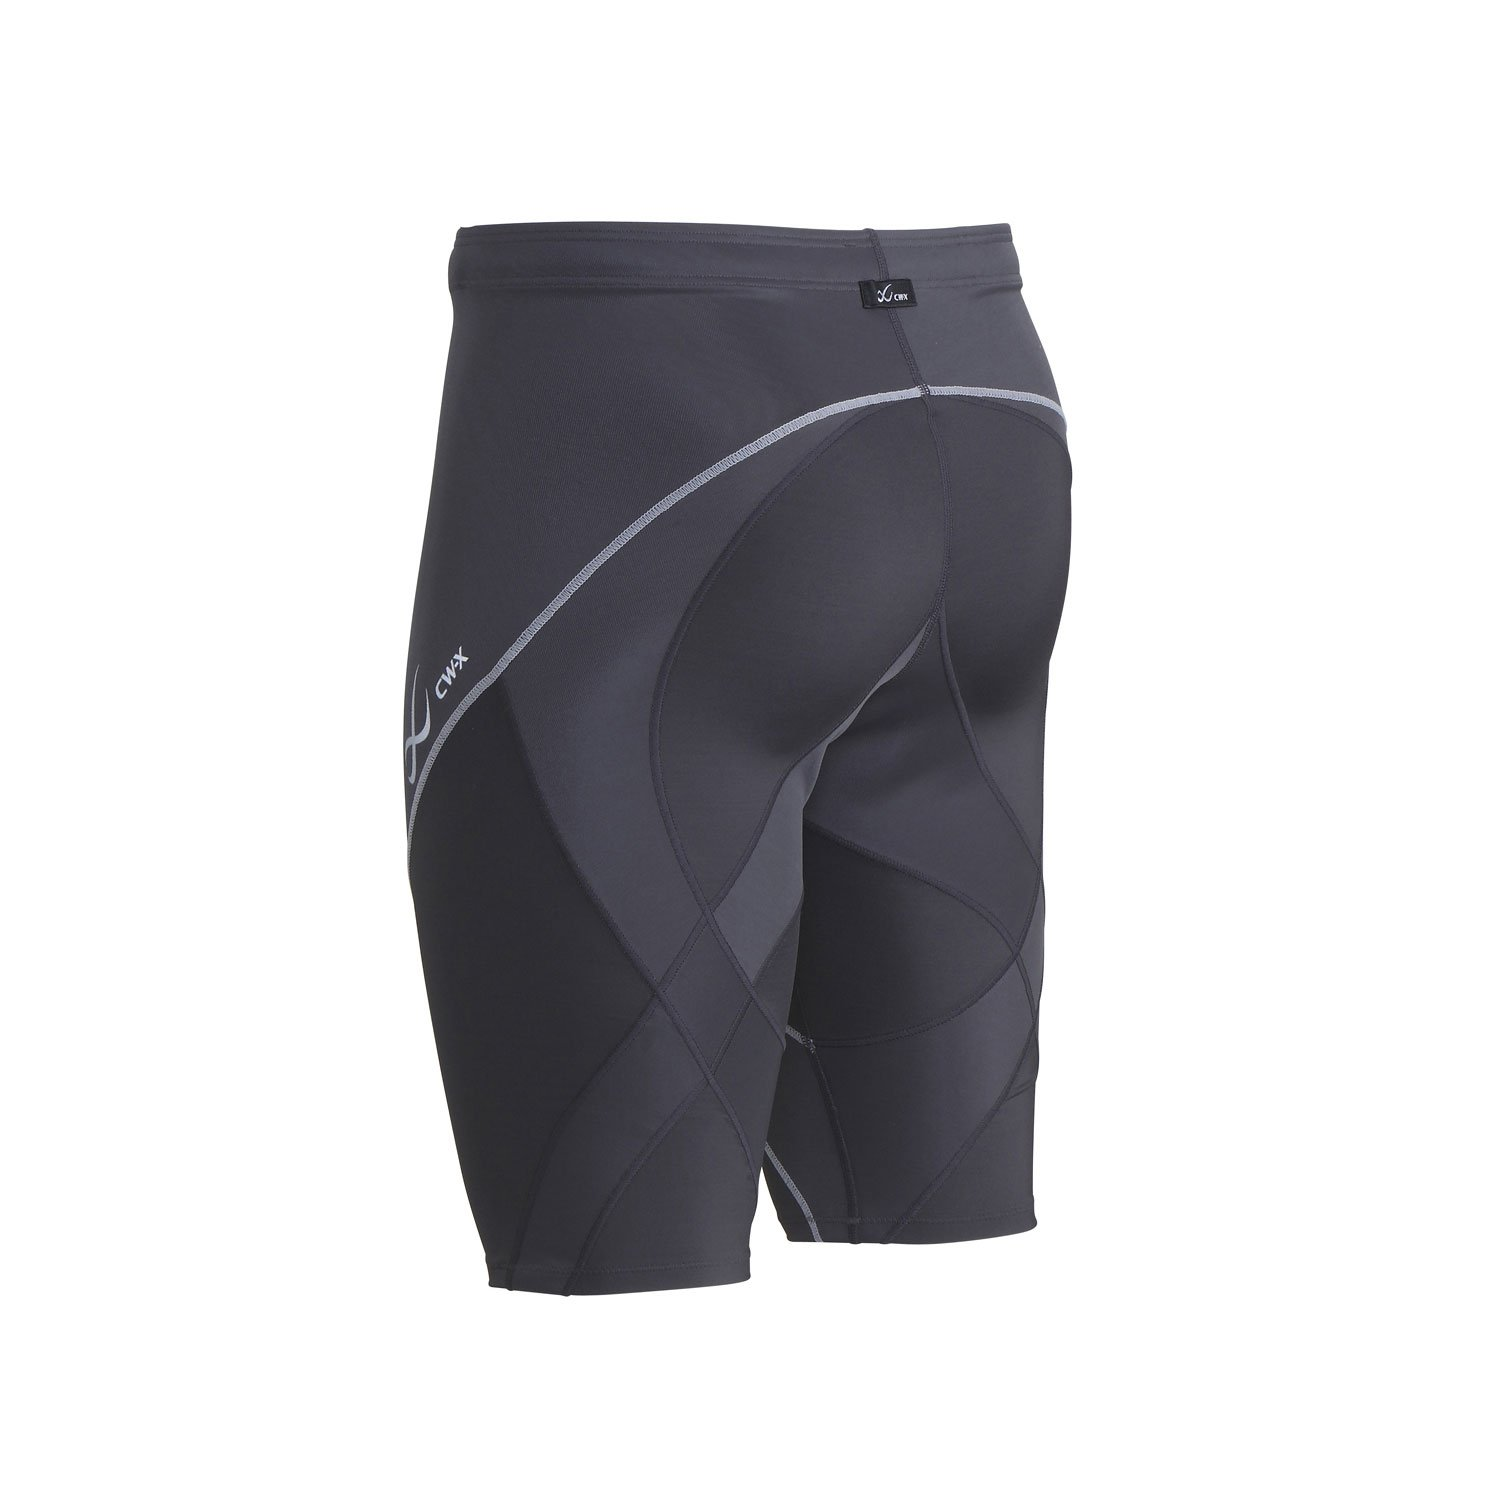 CW-X Men's Endurance Pro Shorts, Charcoal/Charcoal/Silver, Medium by CW-X (Image #5)